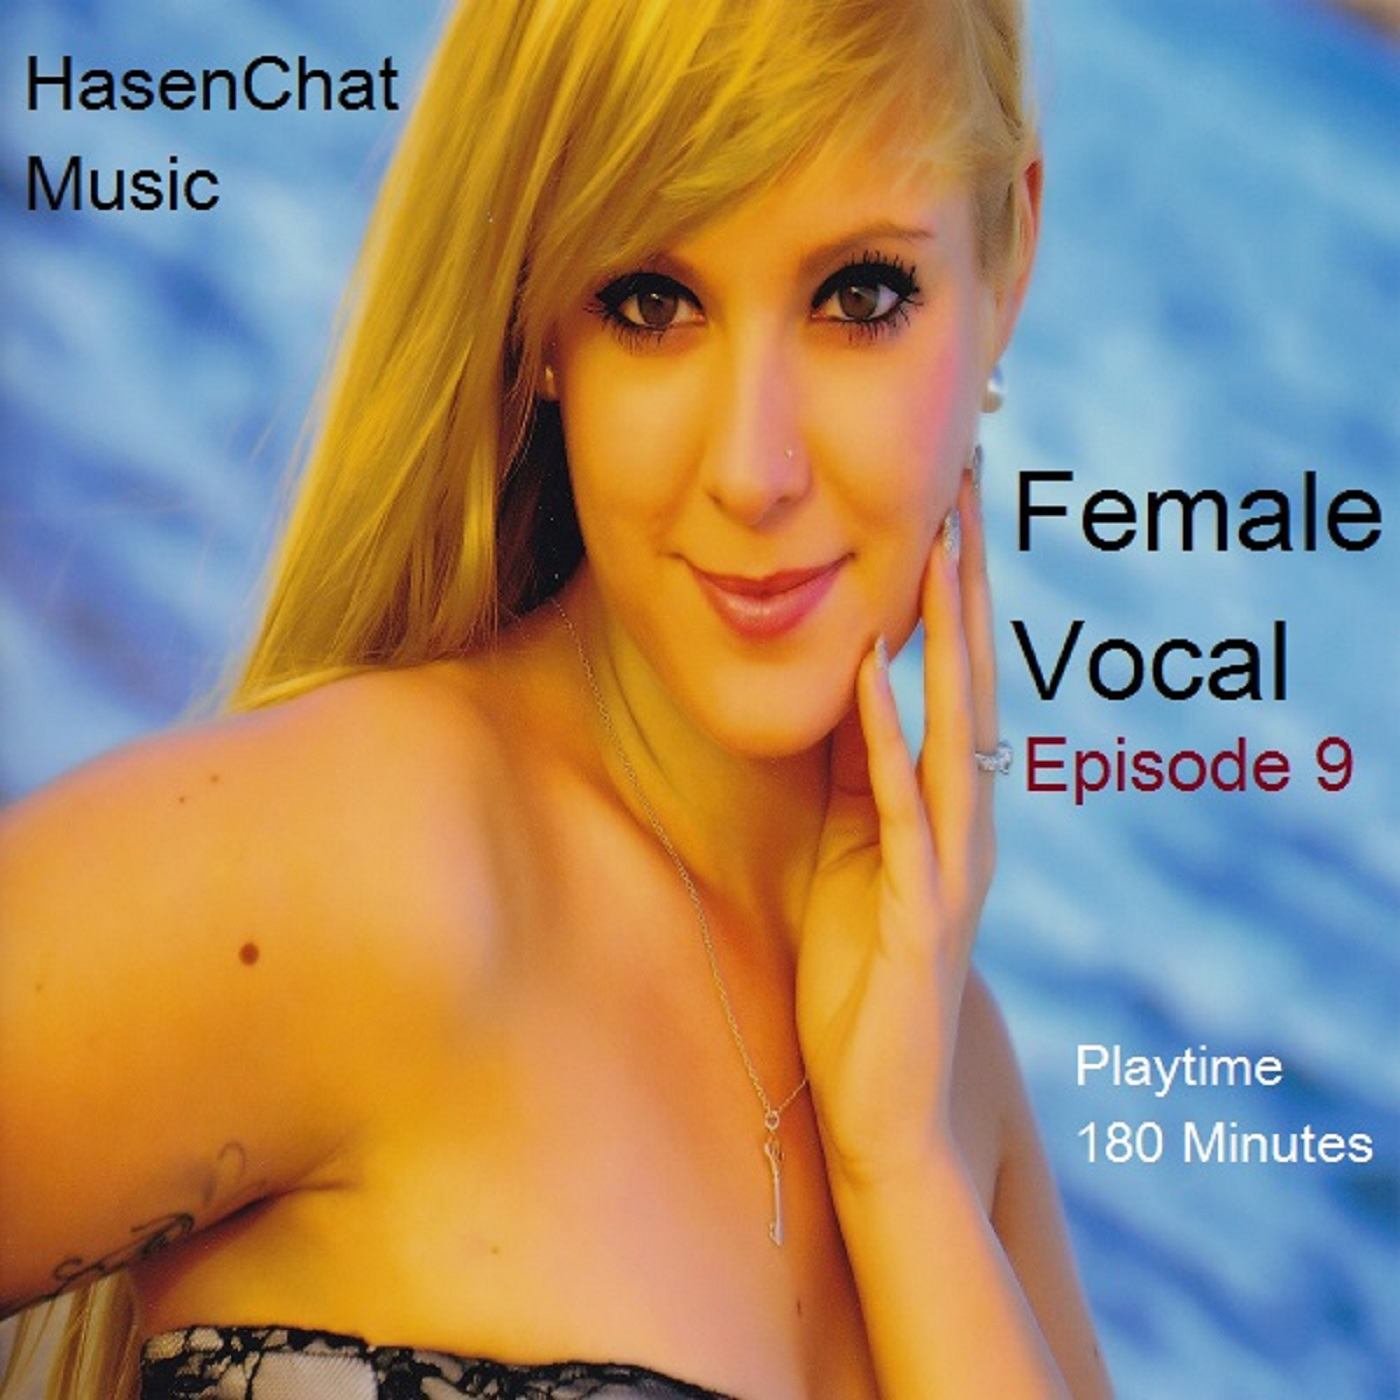 HasenChat Music - Female Vocal - Episode 9